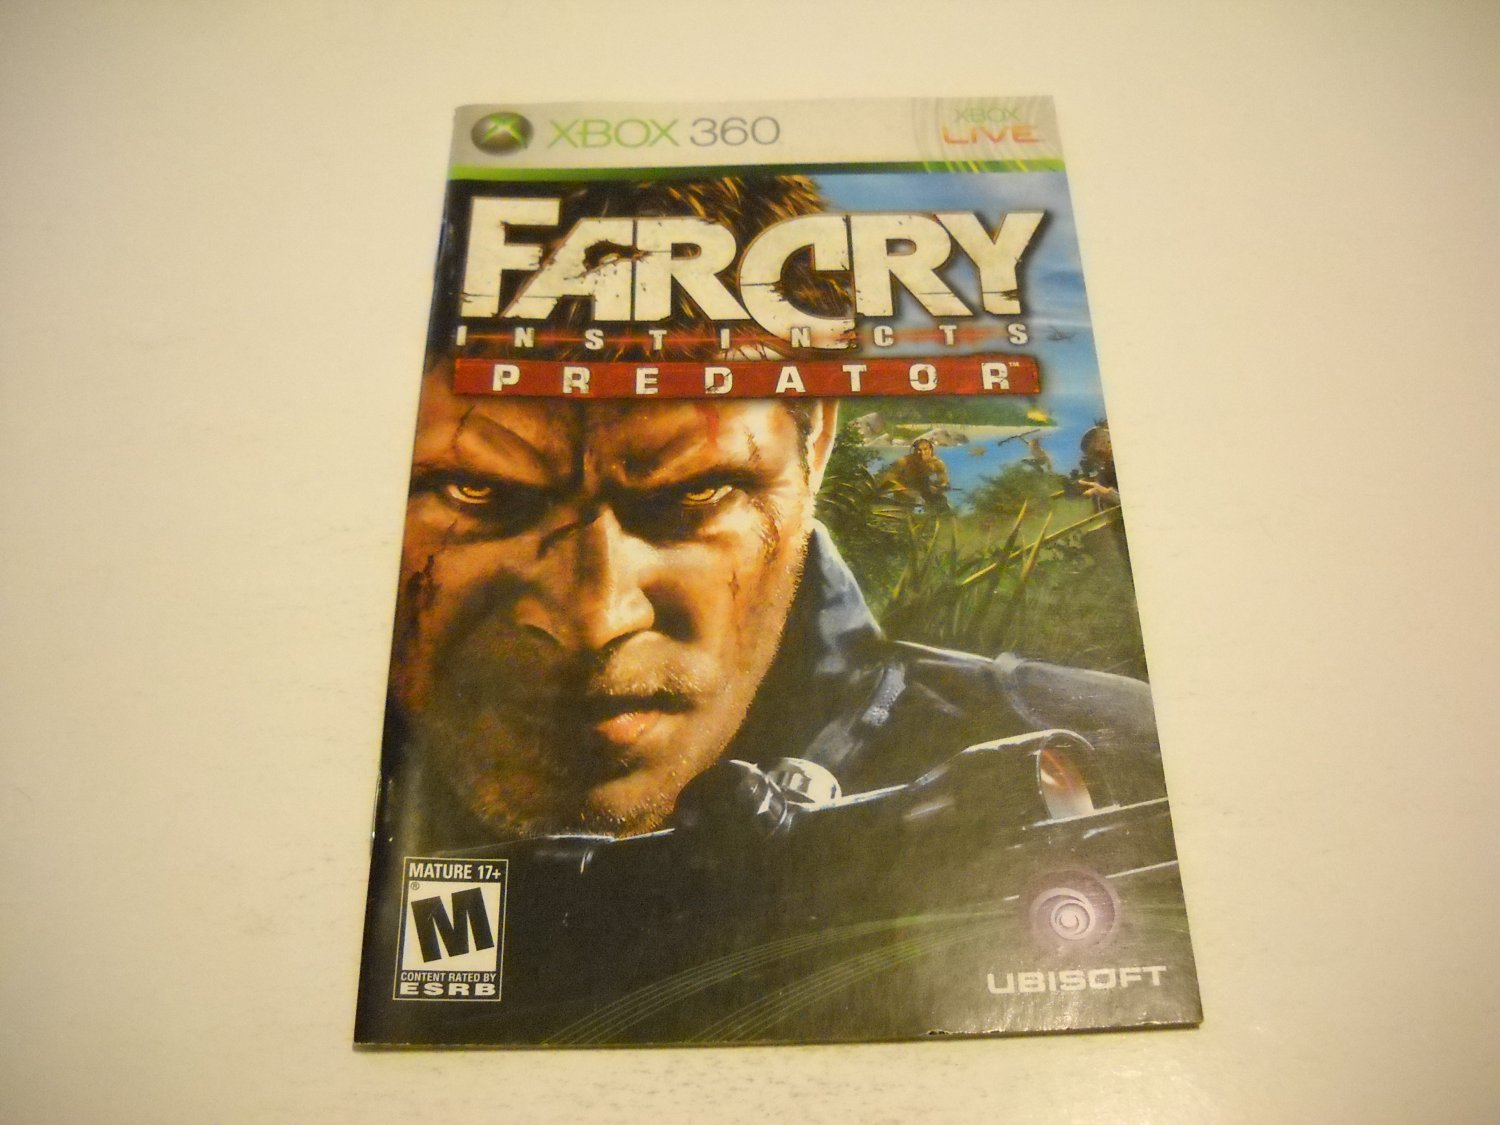 Manual ONLY ~  for Farcry Instincts Predator   - Xbox 360 Instruction Booklet